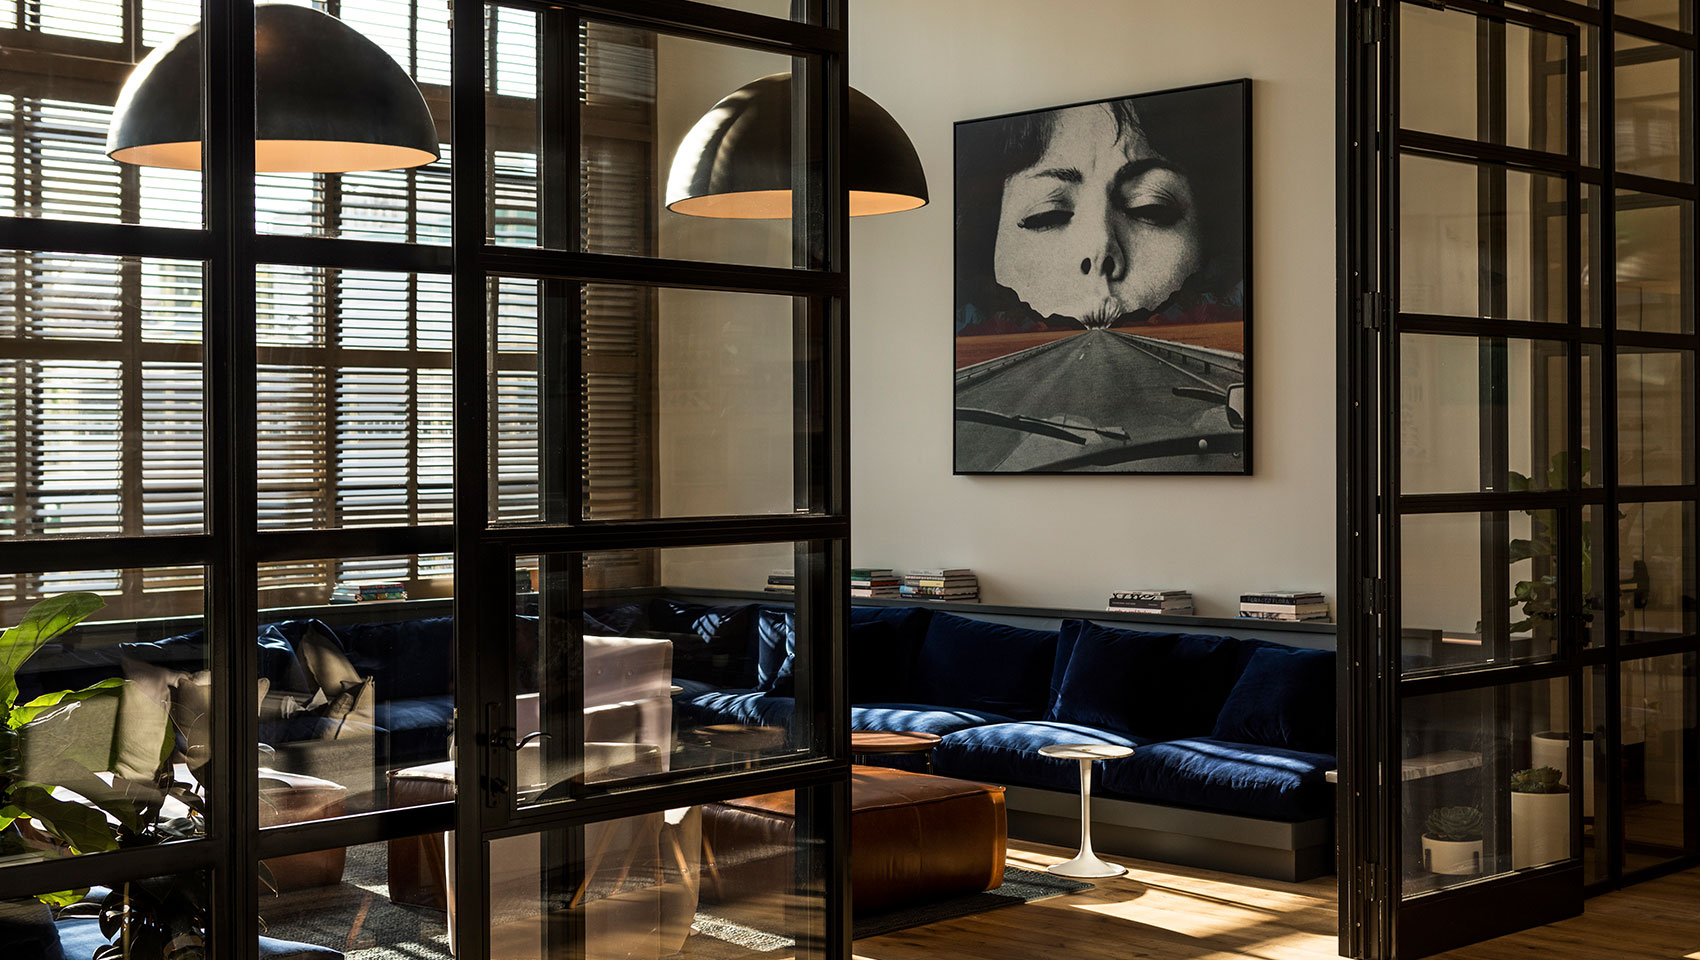 private-room-everly-lounge-hollywood-ever-bar-8f4678f5.jpg